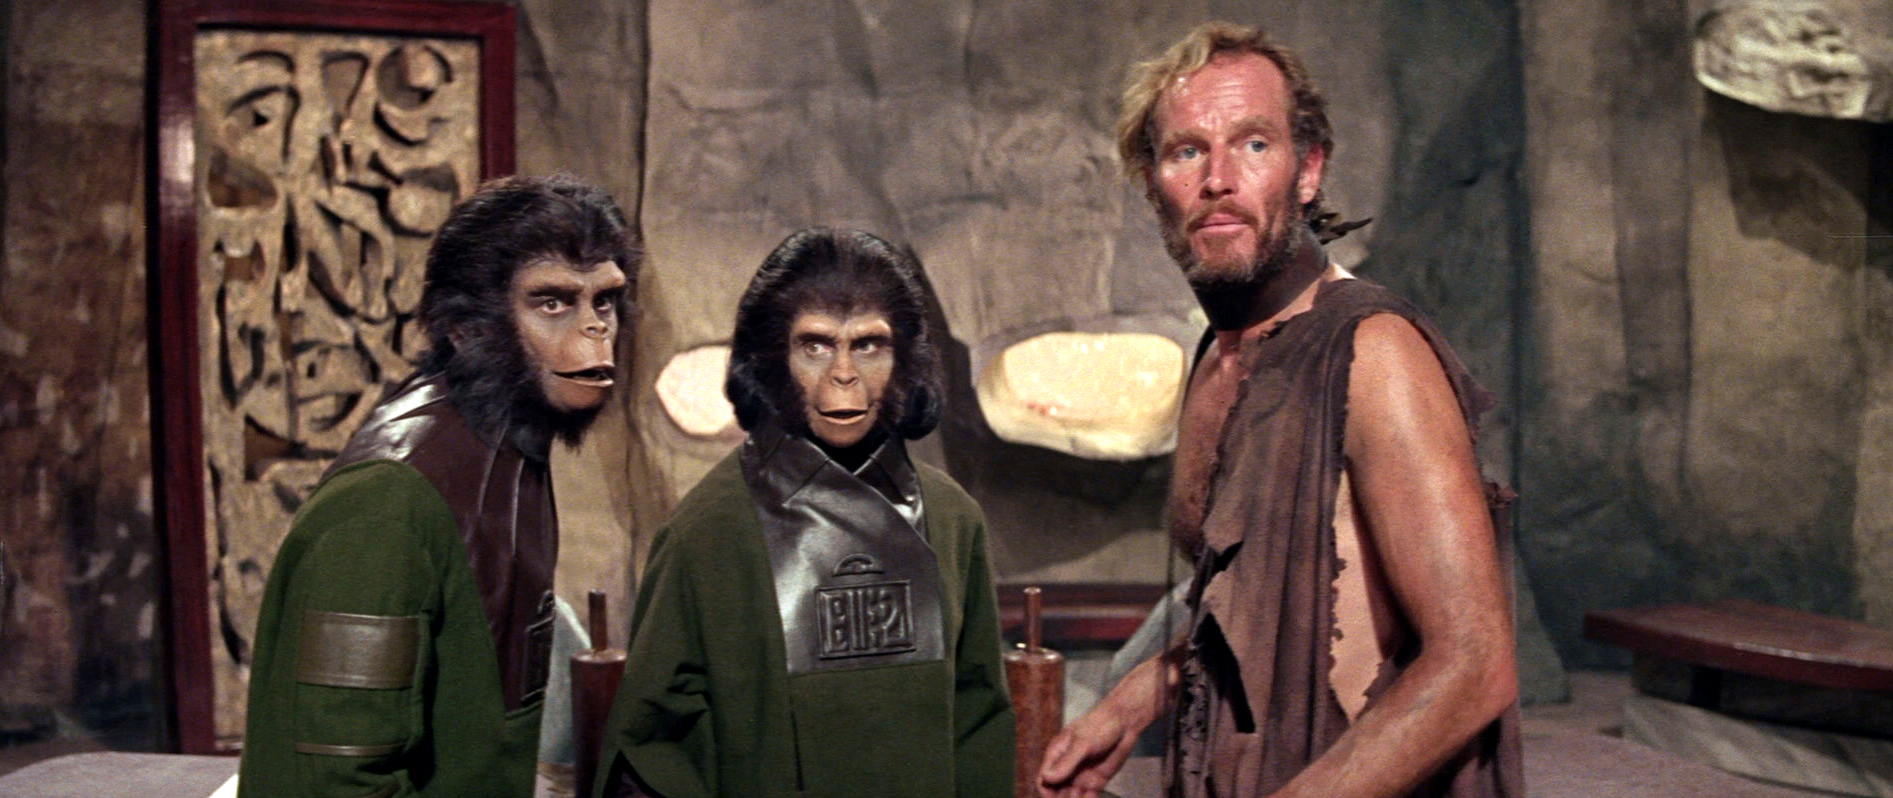 After Porn Ends Reparto planet of the apes (1968) – that was a bit mental